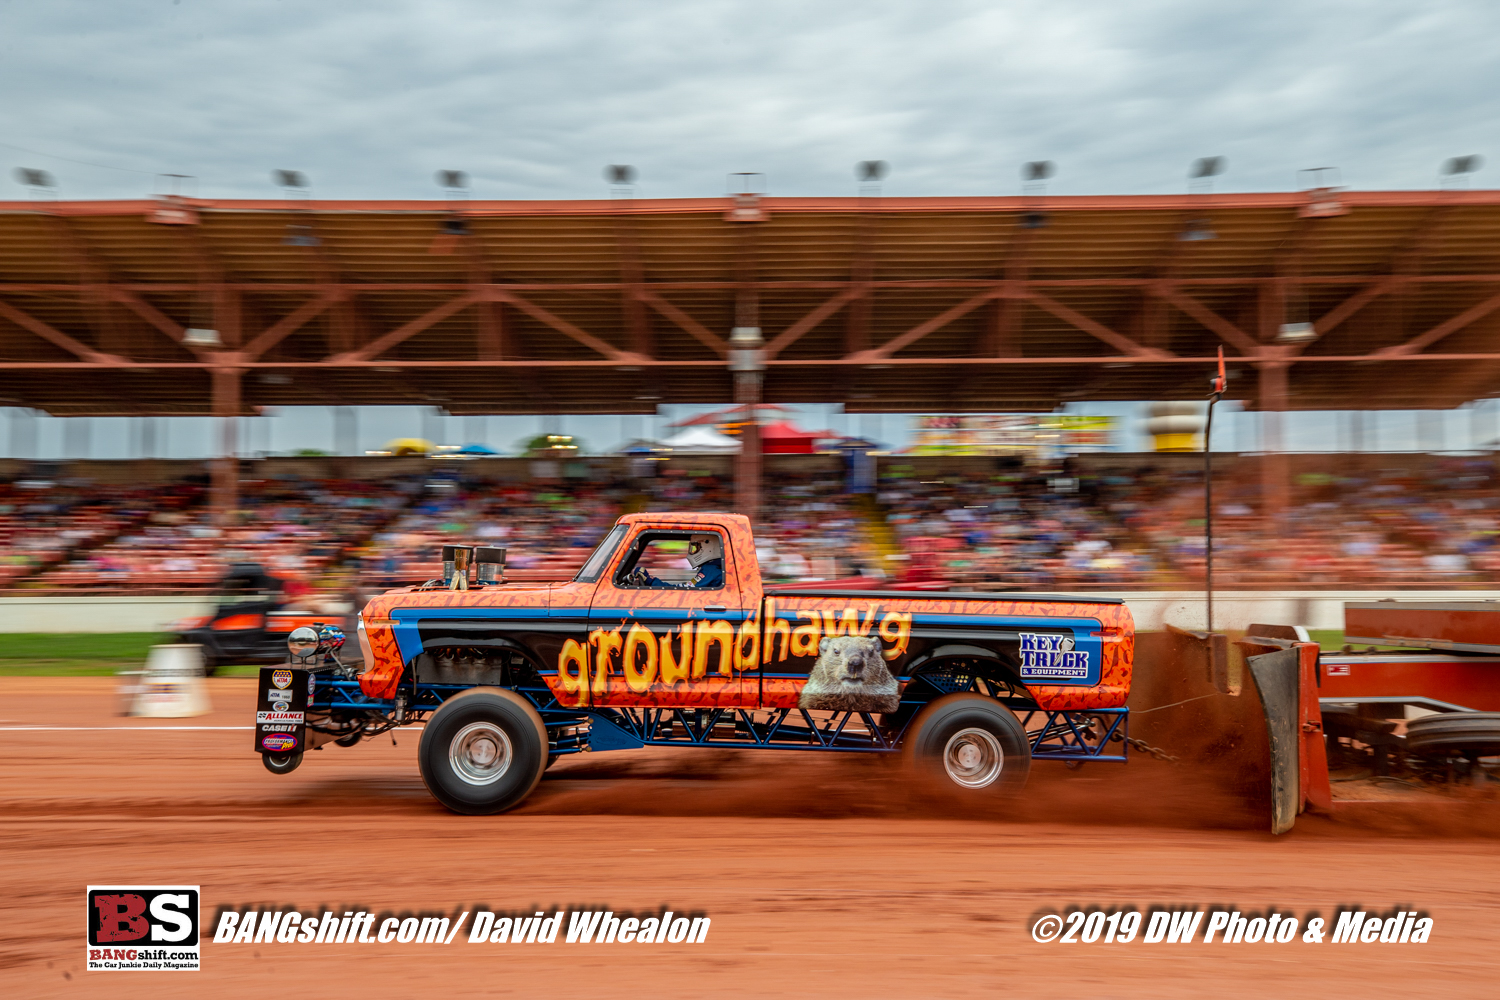 2019 Capital City 300 Pull Photo Coverage: Killer Photos Of Trucks and Tractors Getting Down With The Sled!